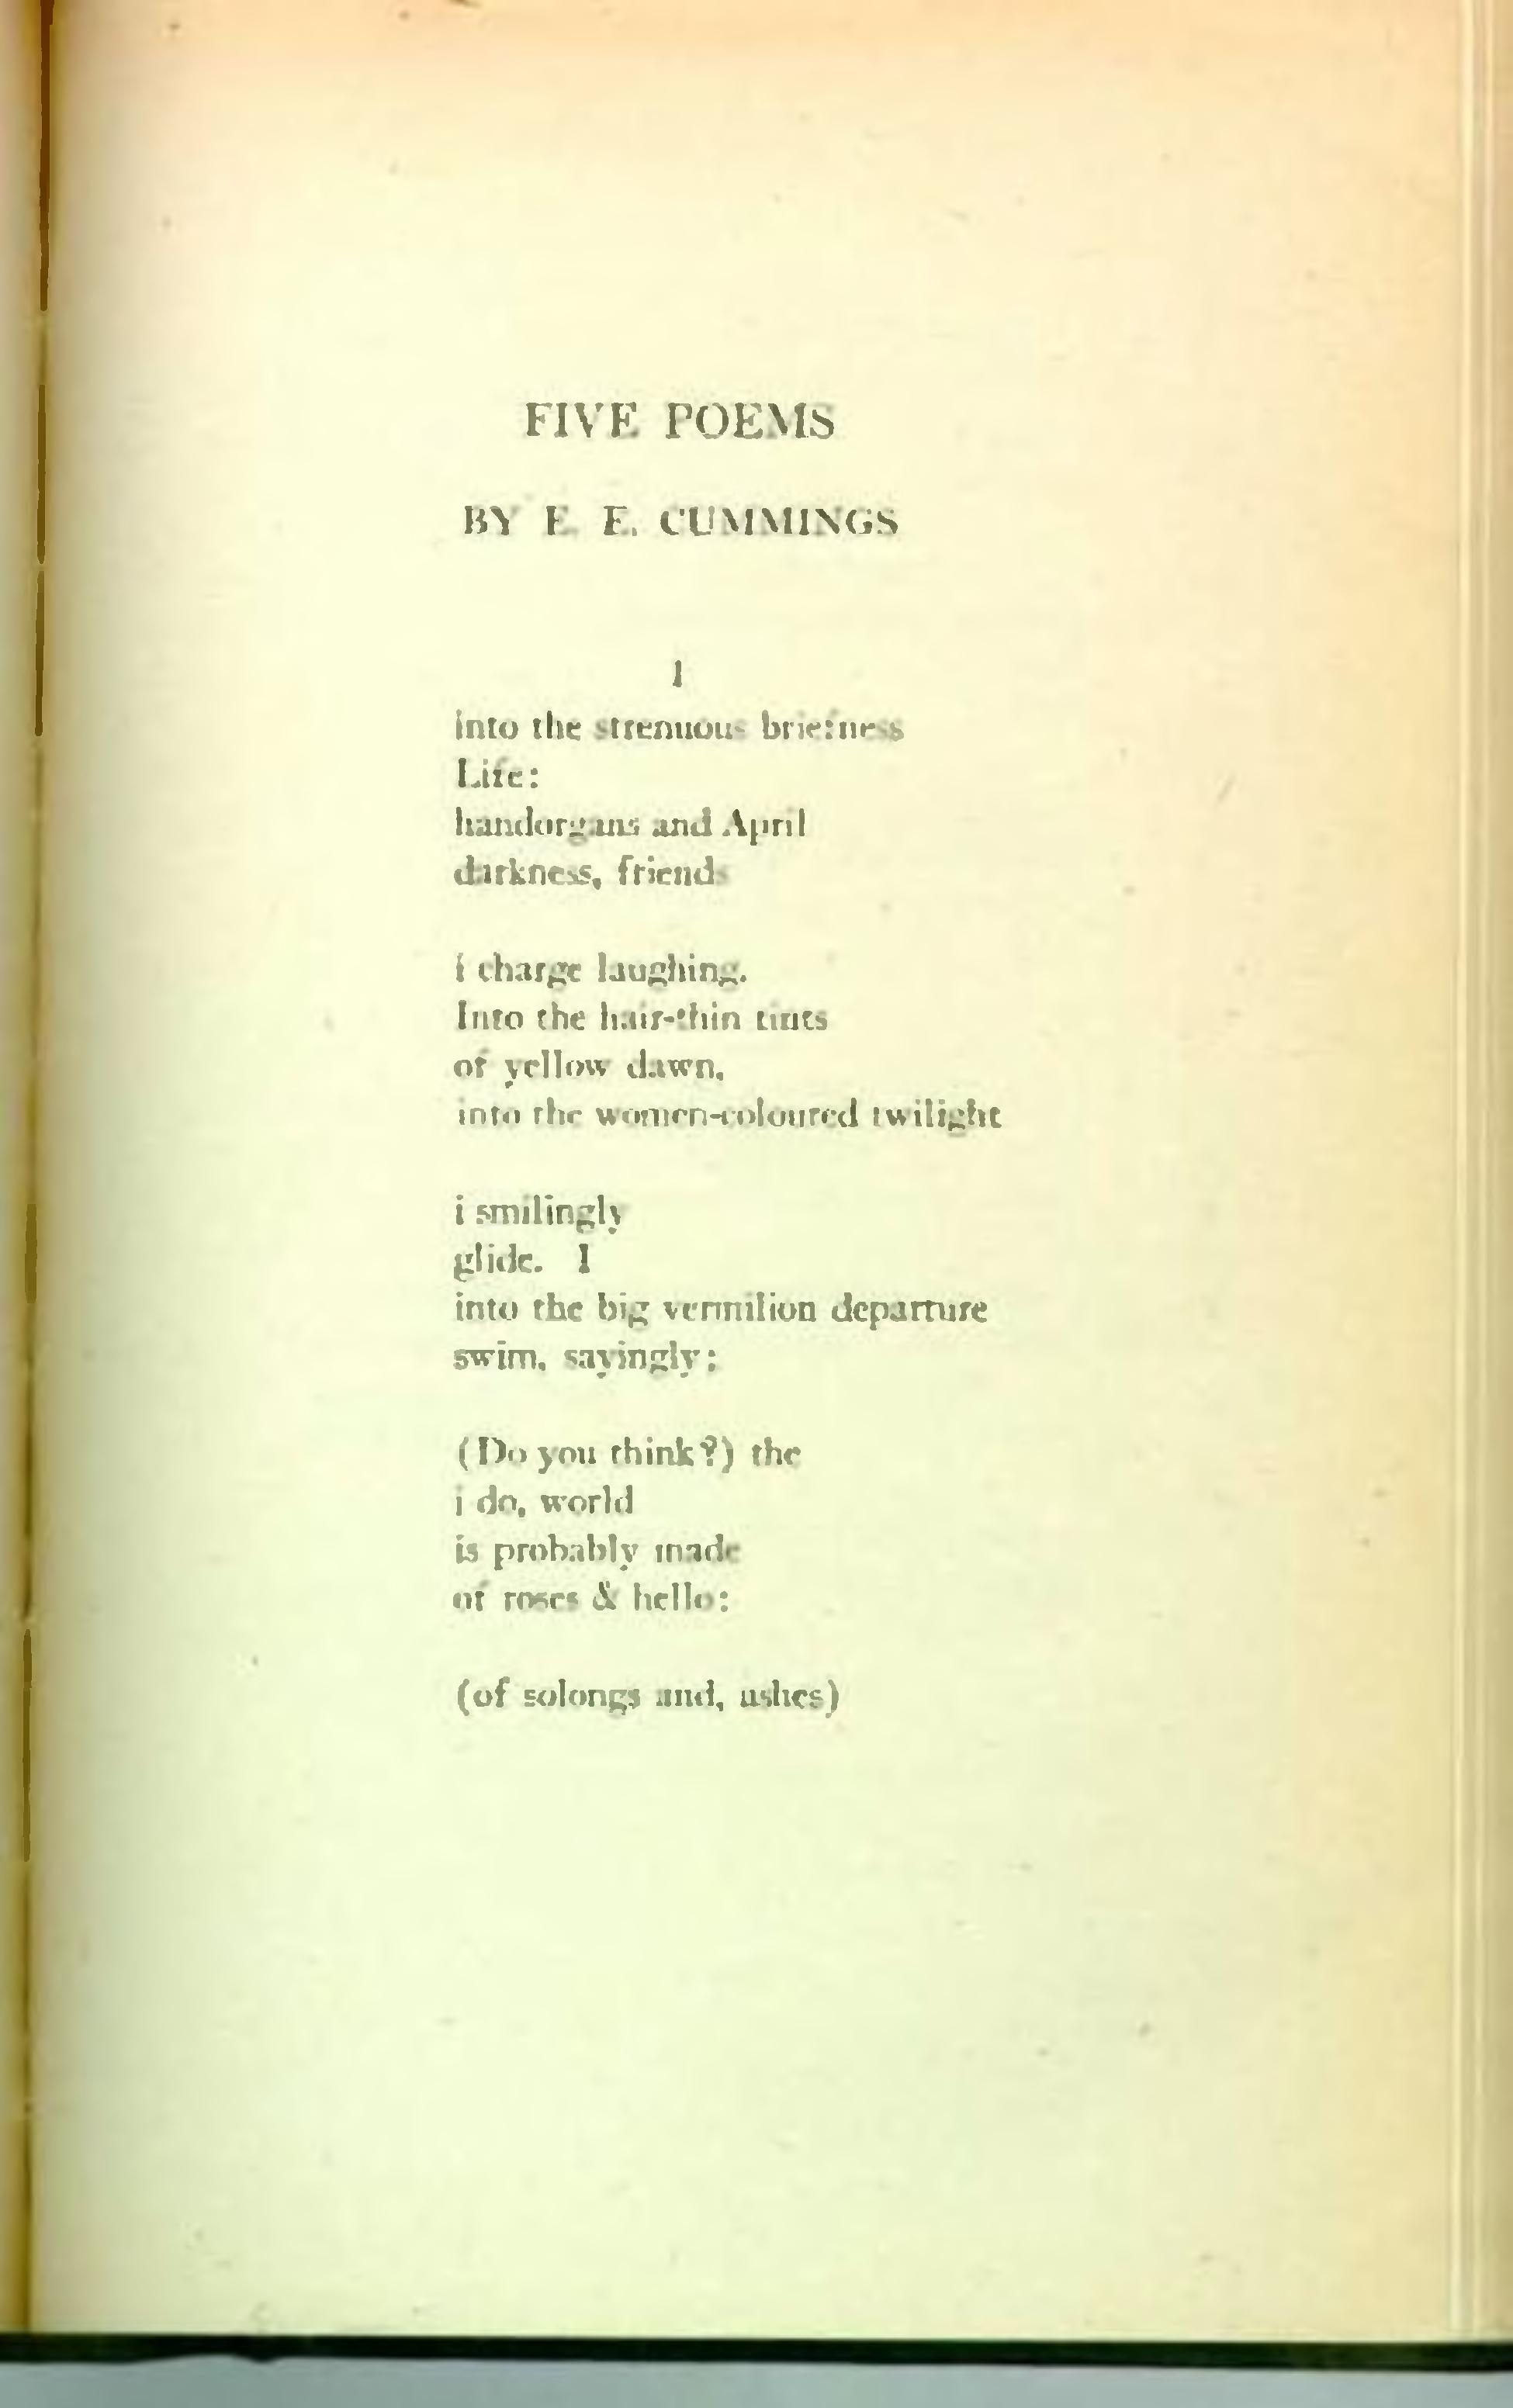 an analysis of the poems by edward estlin cummings Classic poetry series edward estlin cummings - poems - publication date: 2004 publisher: poemhuntercom - the world's poetry archive.